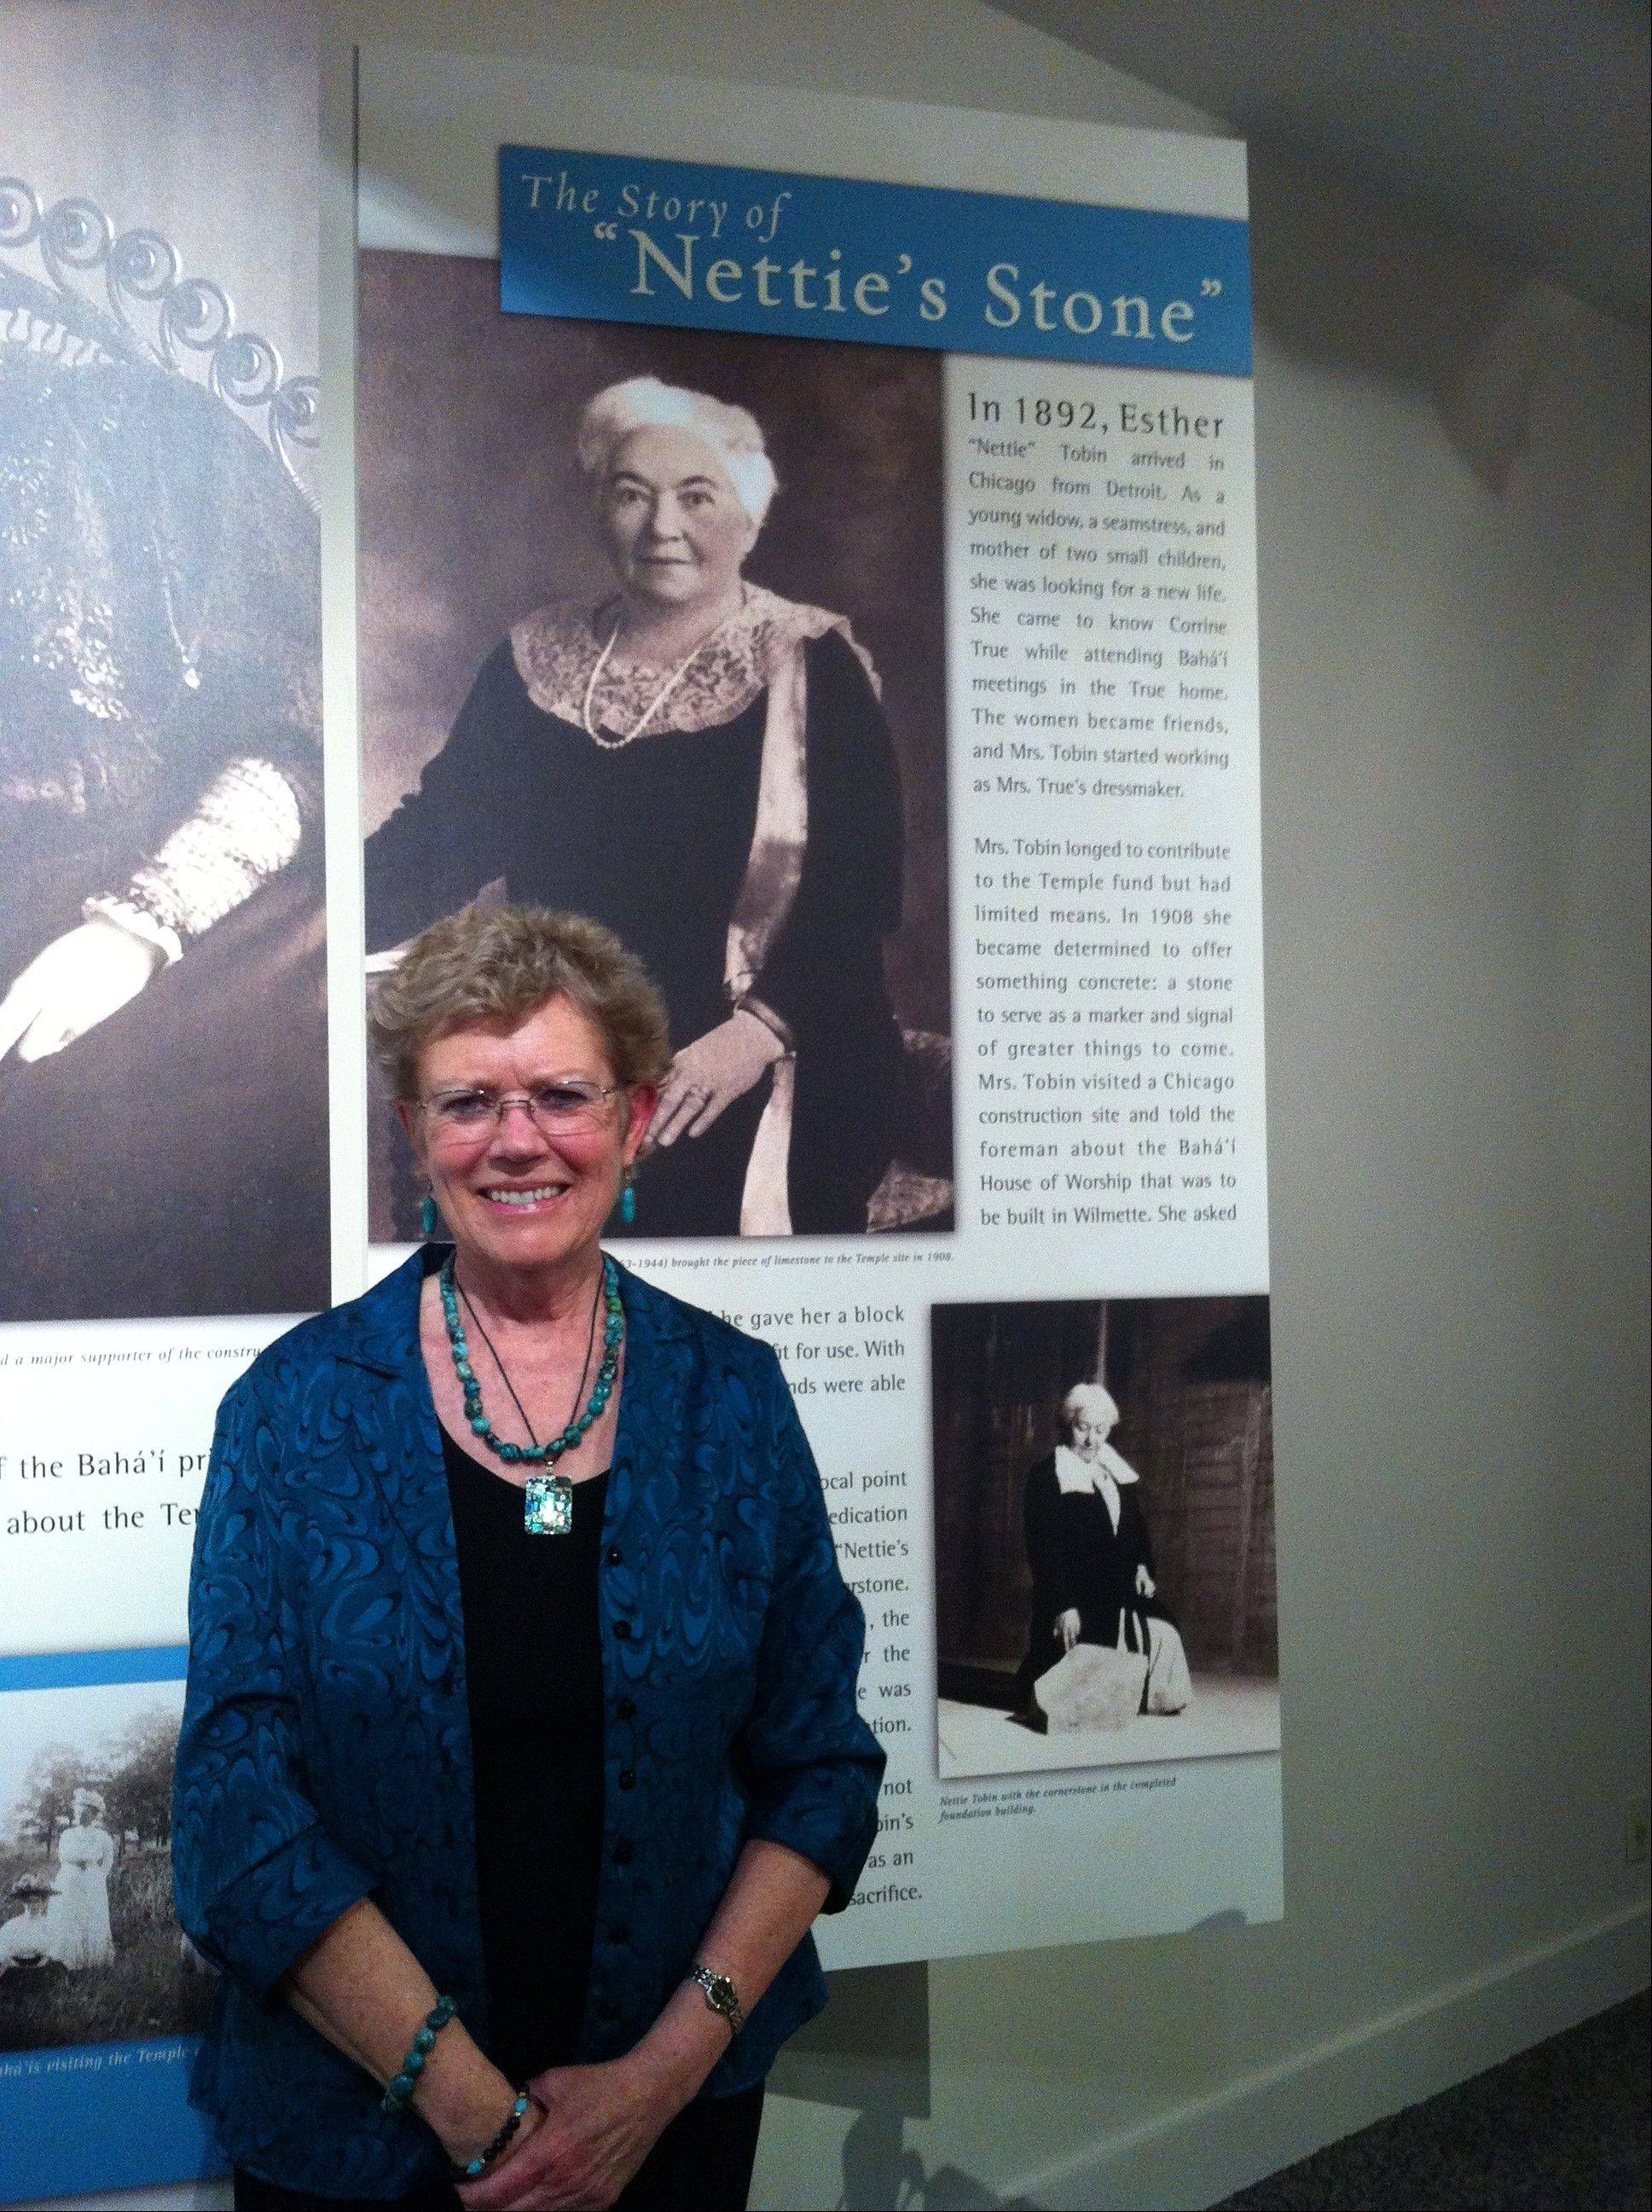 Barbara Tobin of Palatine visits the exhibit honoring her great-grandmother, Nettie Tobin, at the Baha'i Temple in Wilmette.